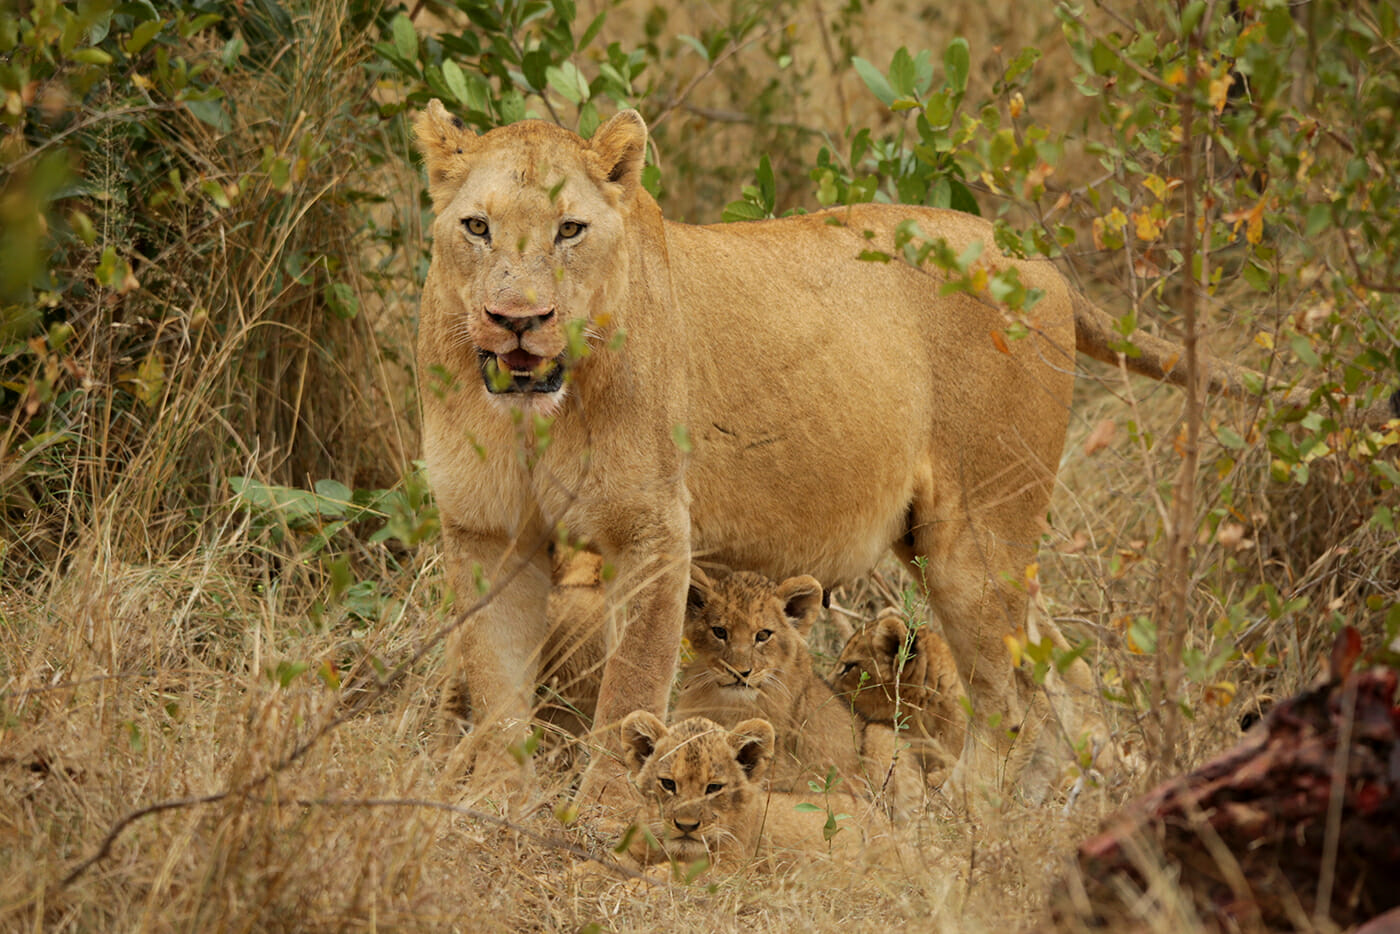 A female lioness is at her wits end with lots of hungry mouths to feed. Photo by Heléne Ramackers